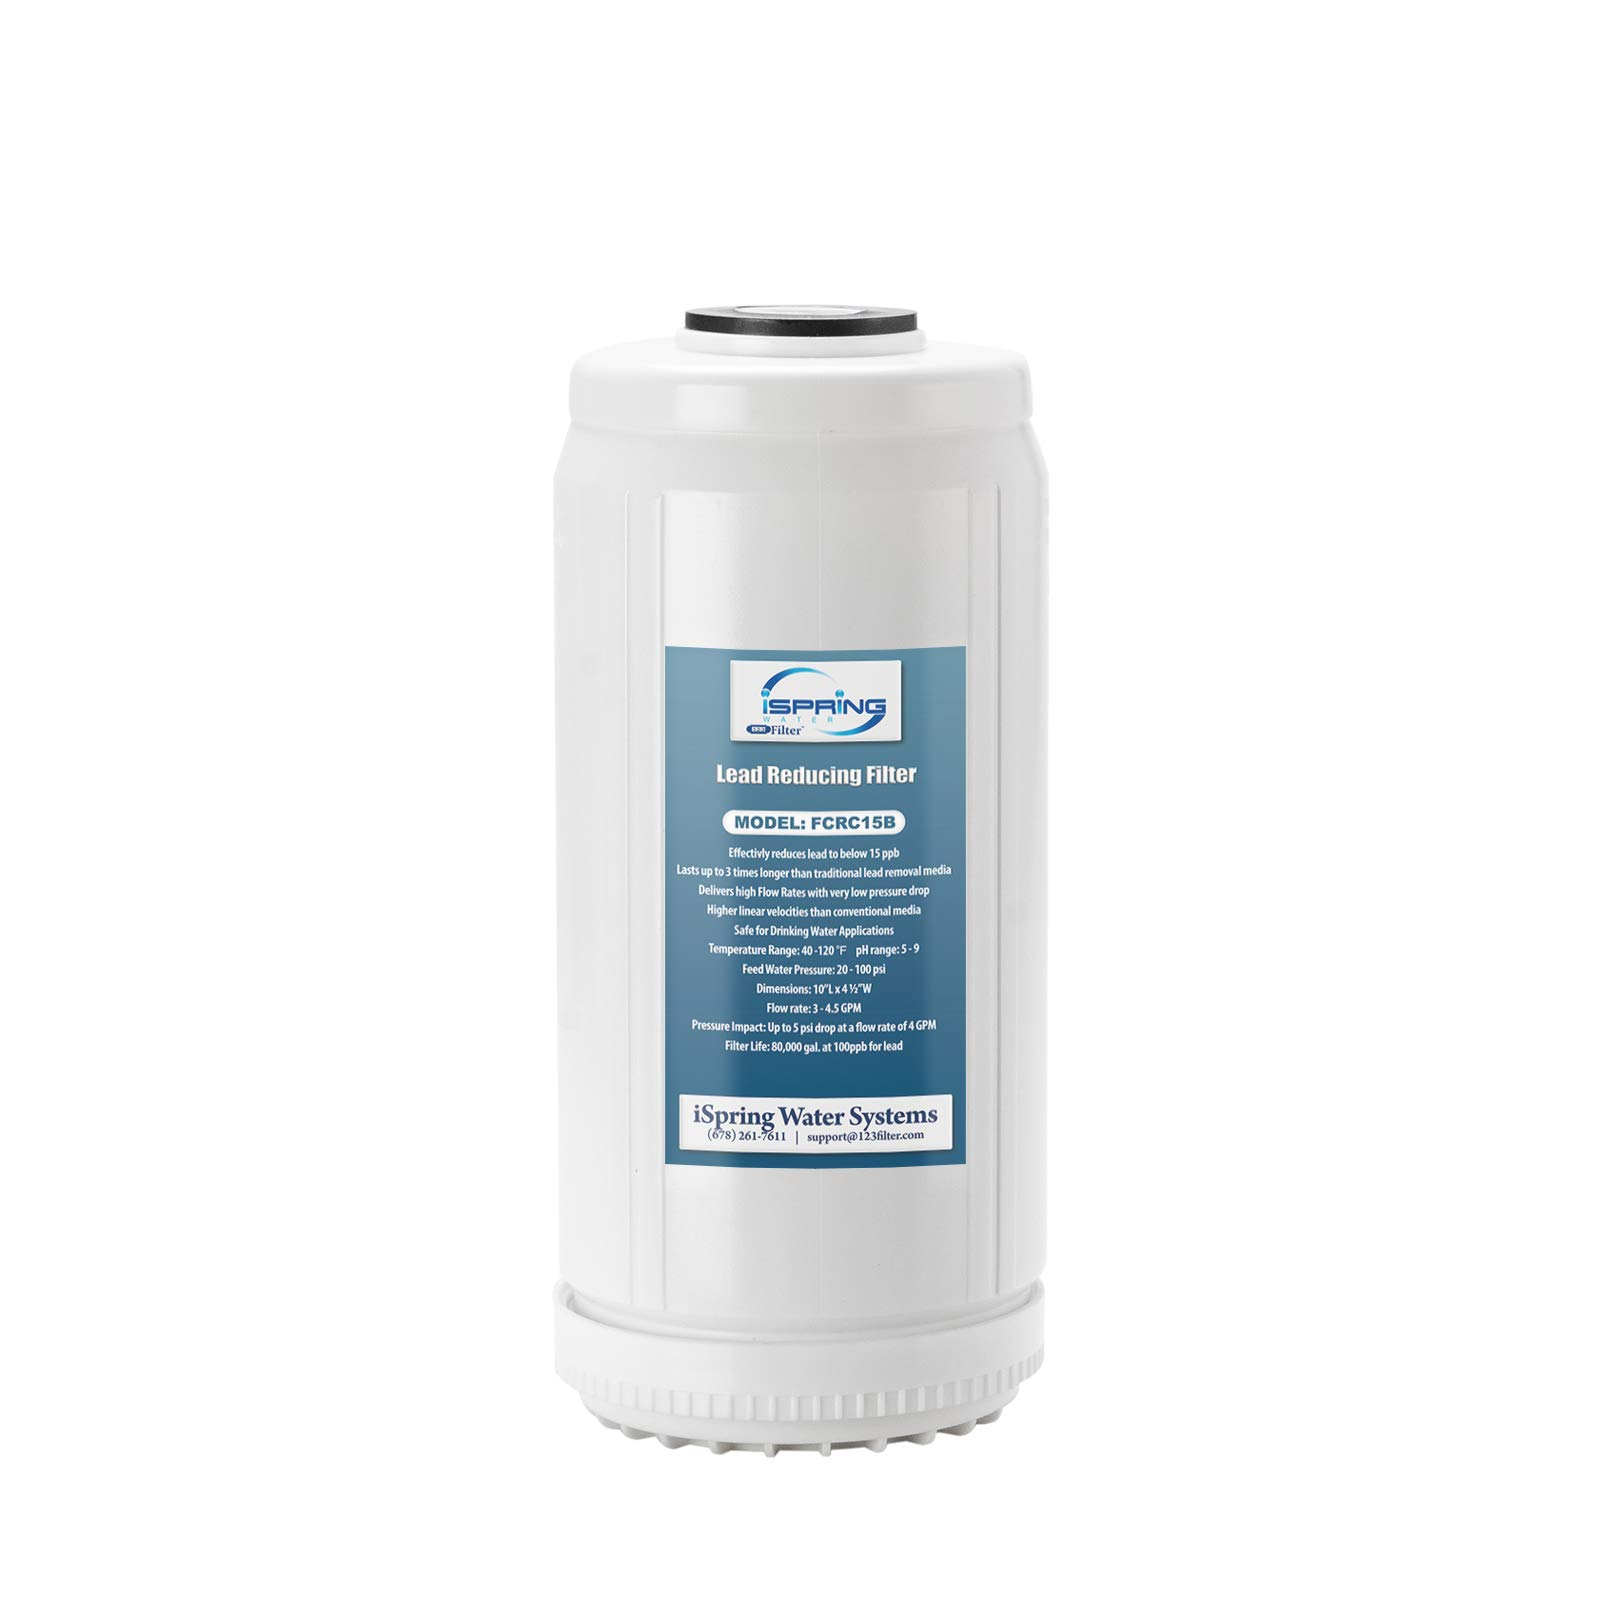 """iSpring FCRC15B Lead Reducing Replacement Filter, Ultra High Capacity, 10""""x4.5"""", Fits Whole House Water Filtration System WGB21B-PB, White"""